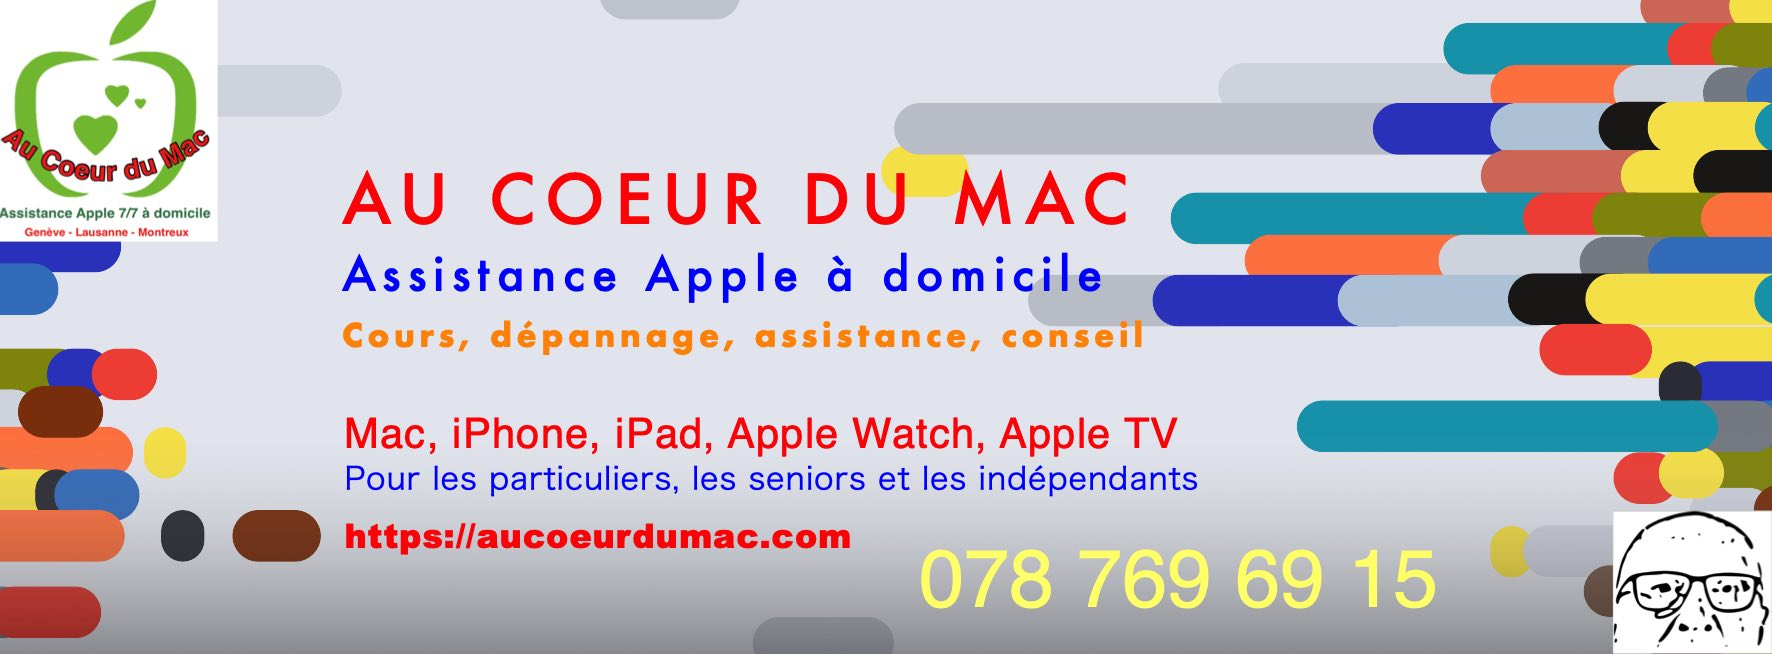 assistance apple domicile geneve